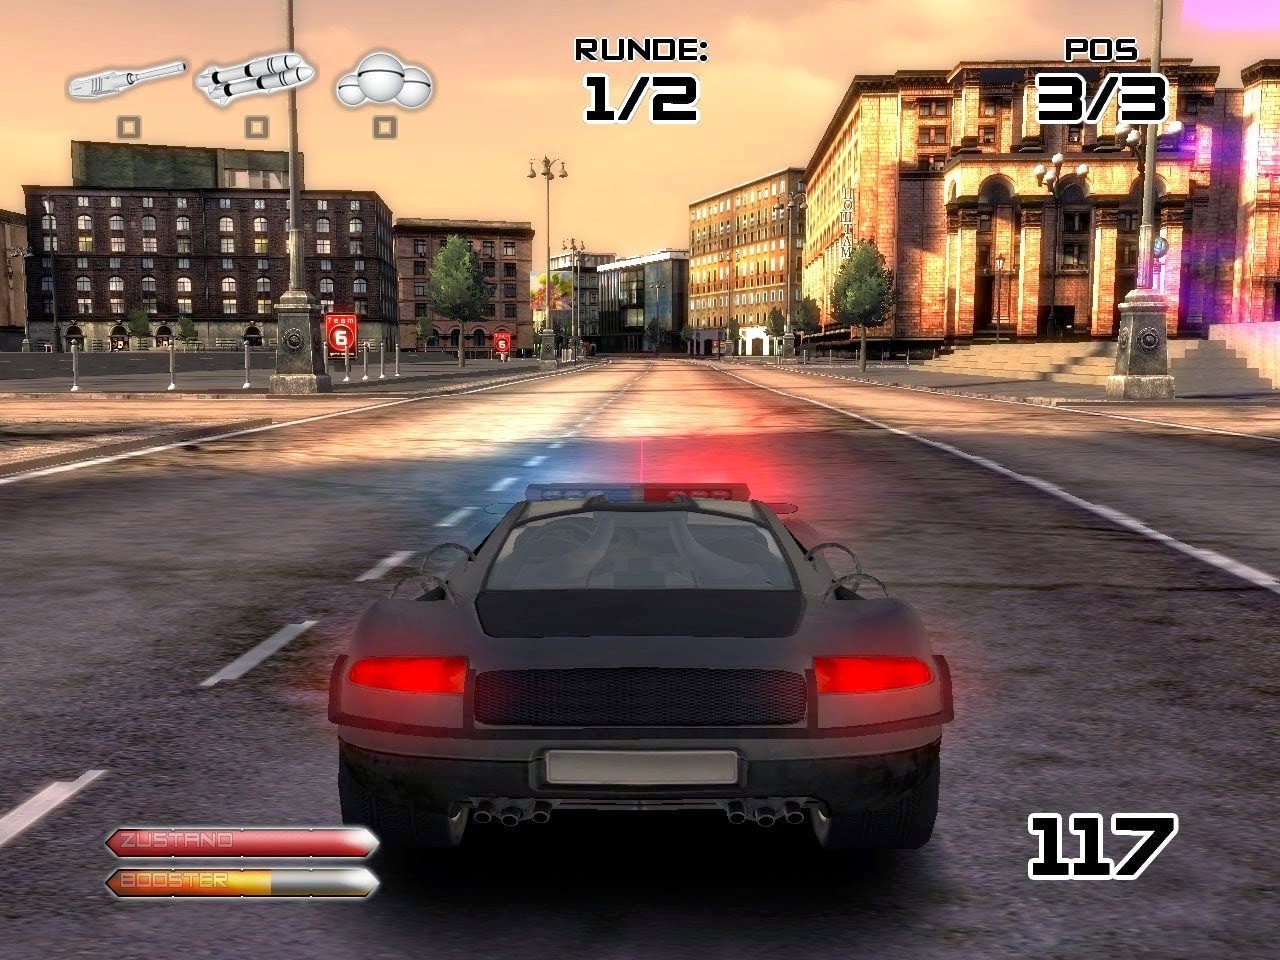 http://www.softwaresvilla.com/2015/04/battle-metal-street-riot-control-pc-game-download.html